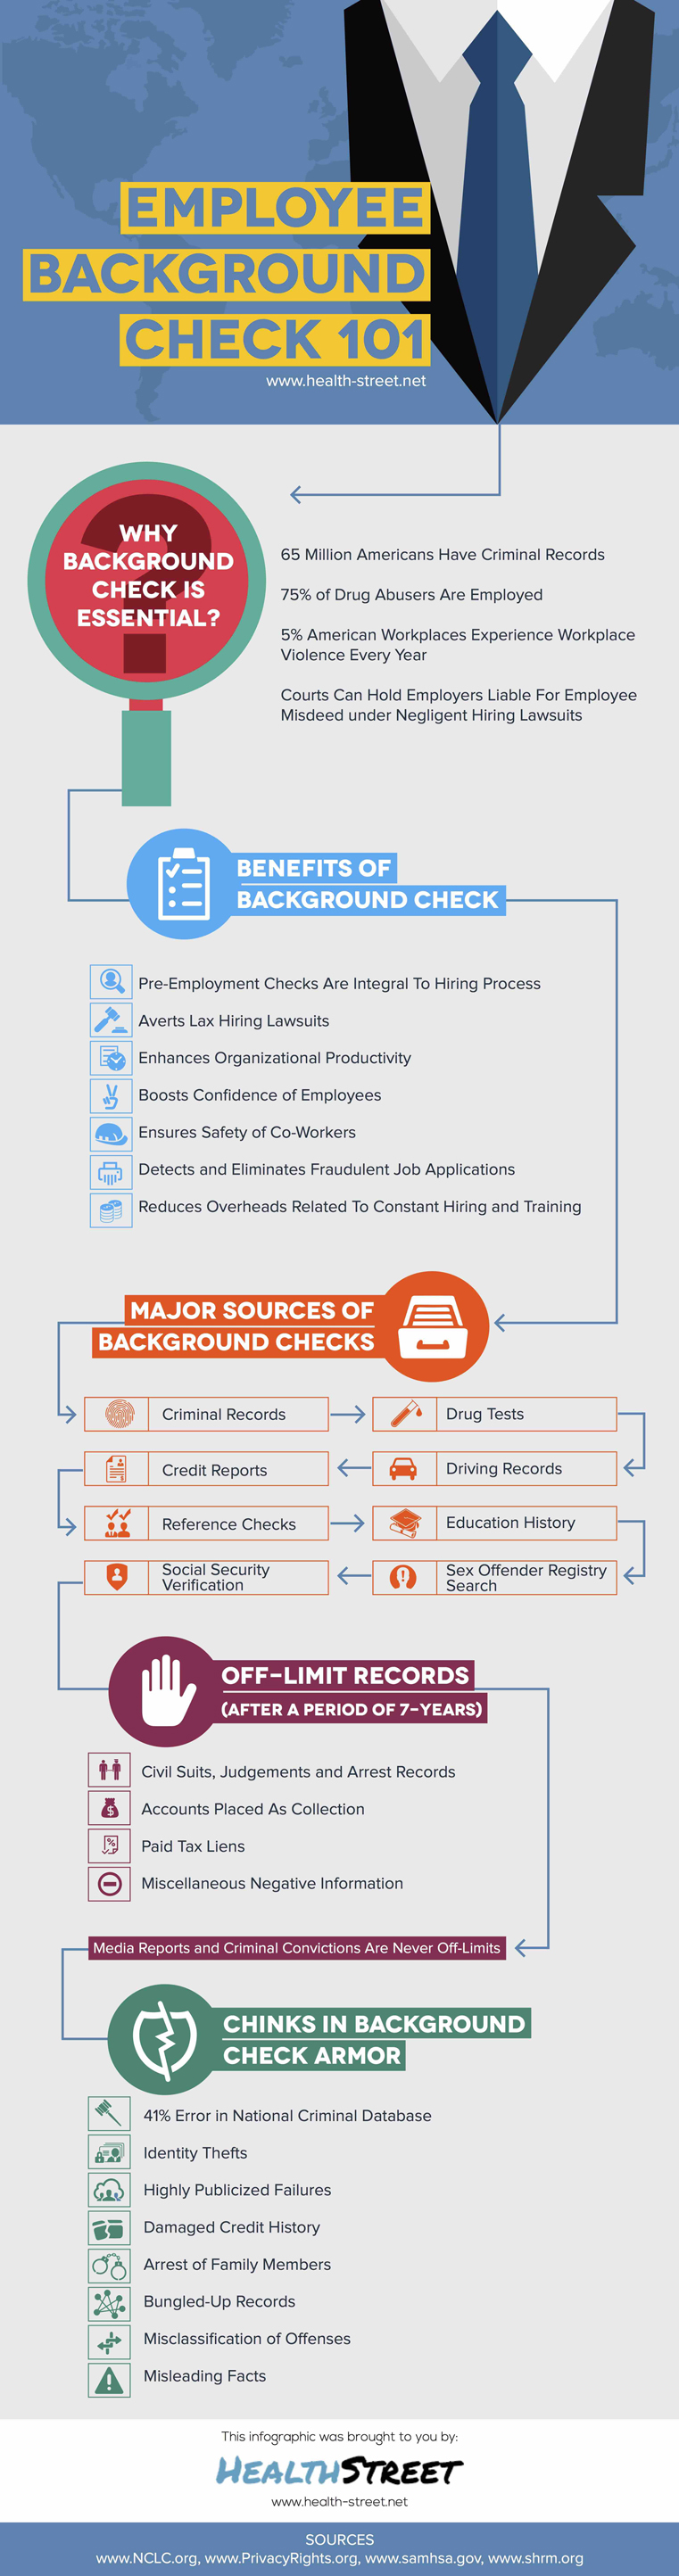 Employee Background Check 101